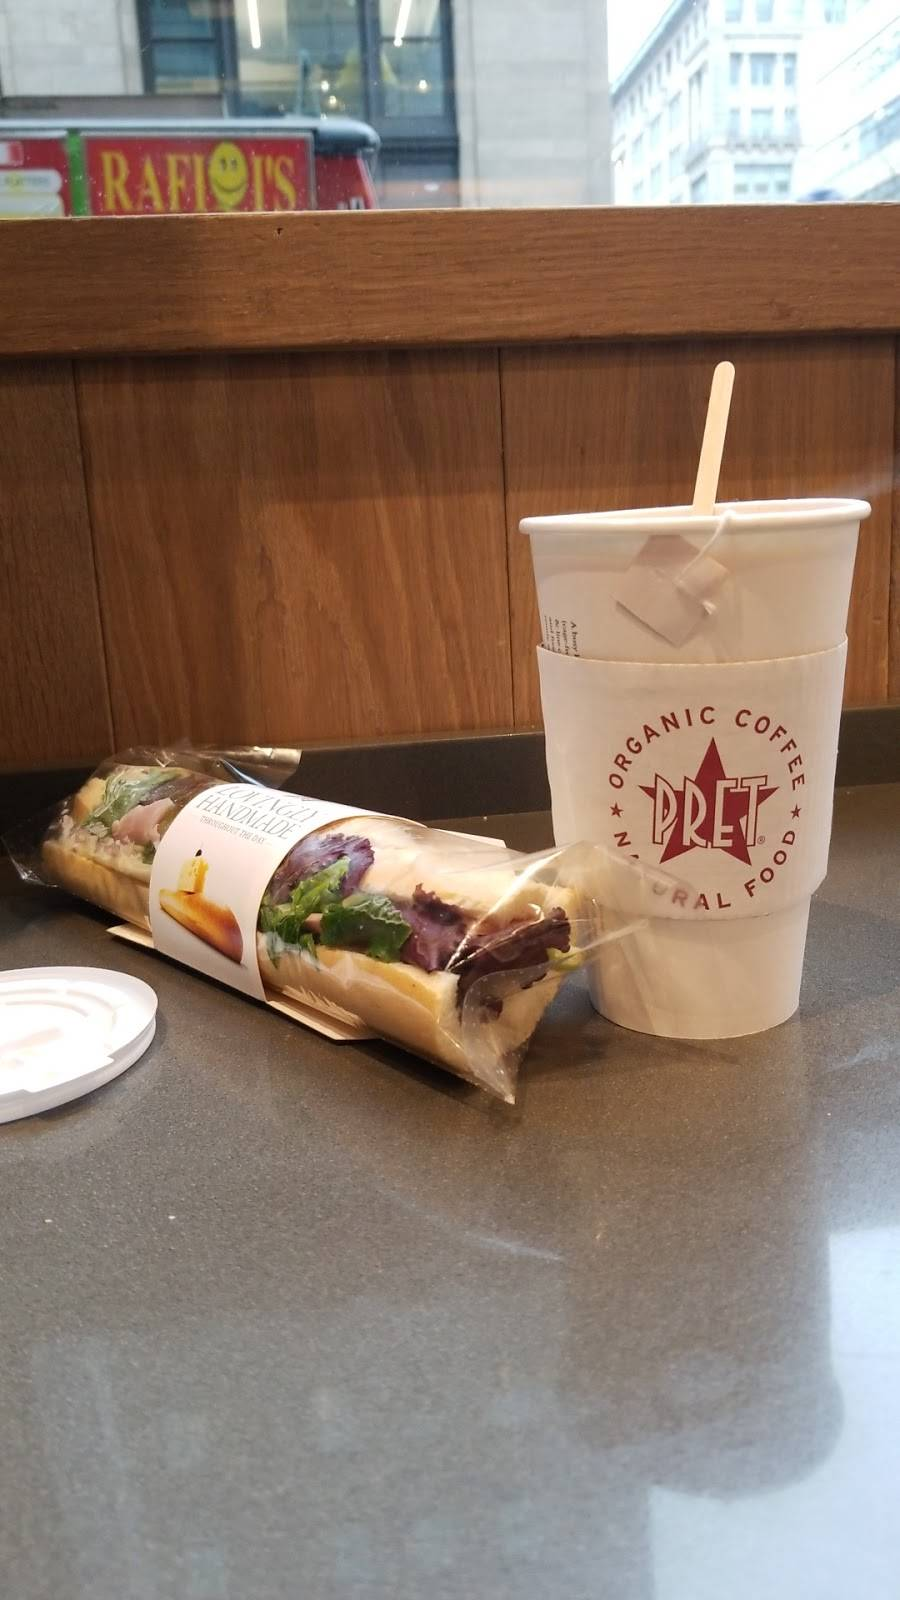 Pret A Manger | meal takeaway | 350 Hudson St, New York, NY 10014, USA | 2128470421 OR +1 212-847-0421